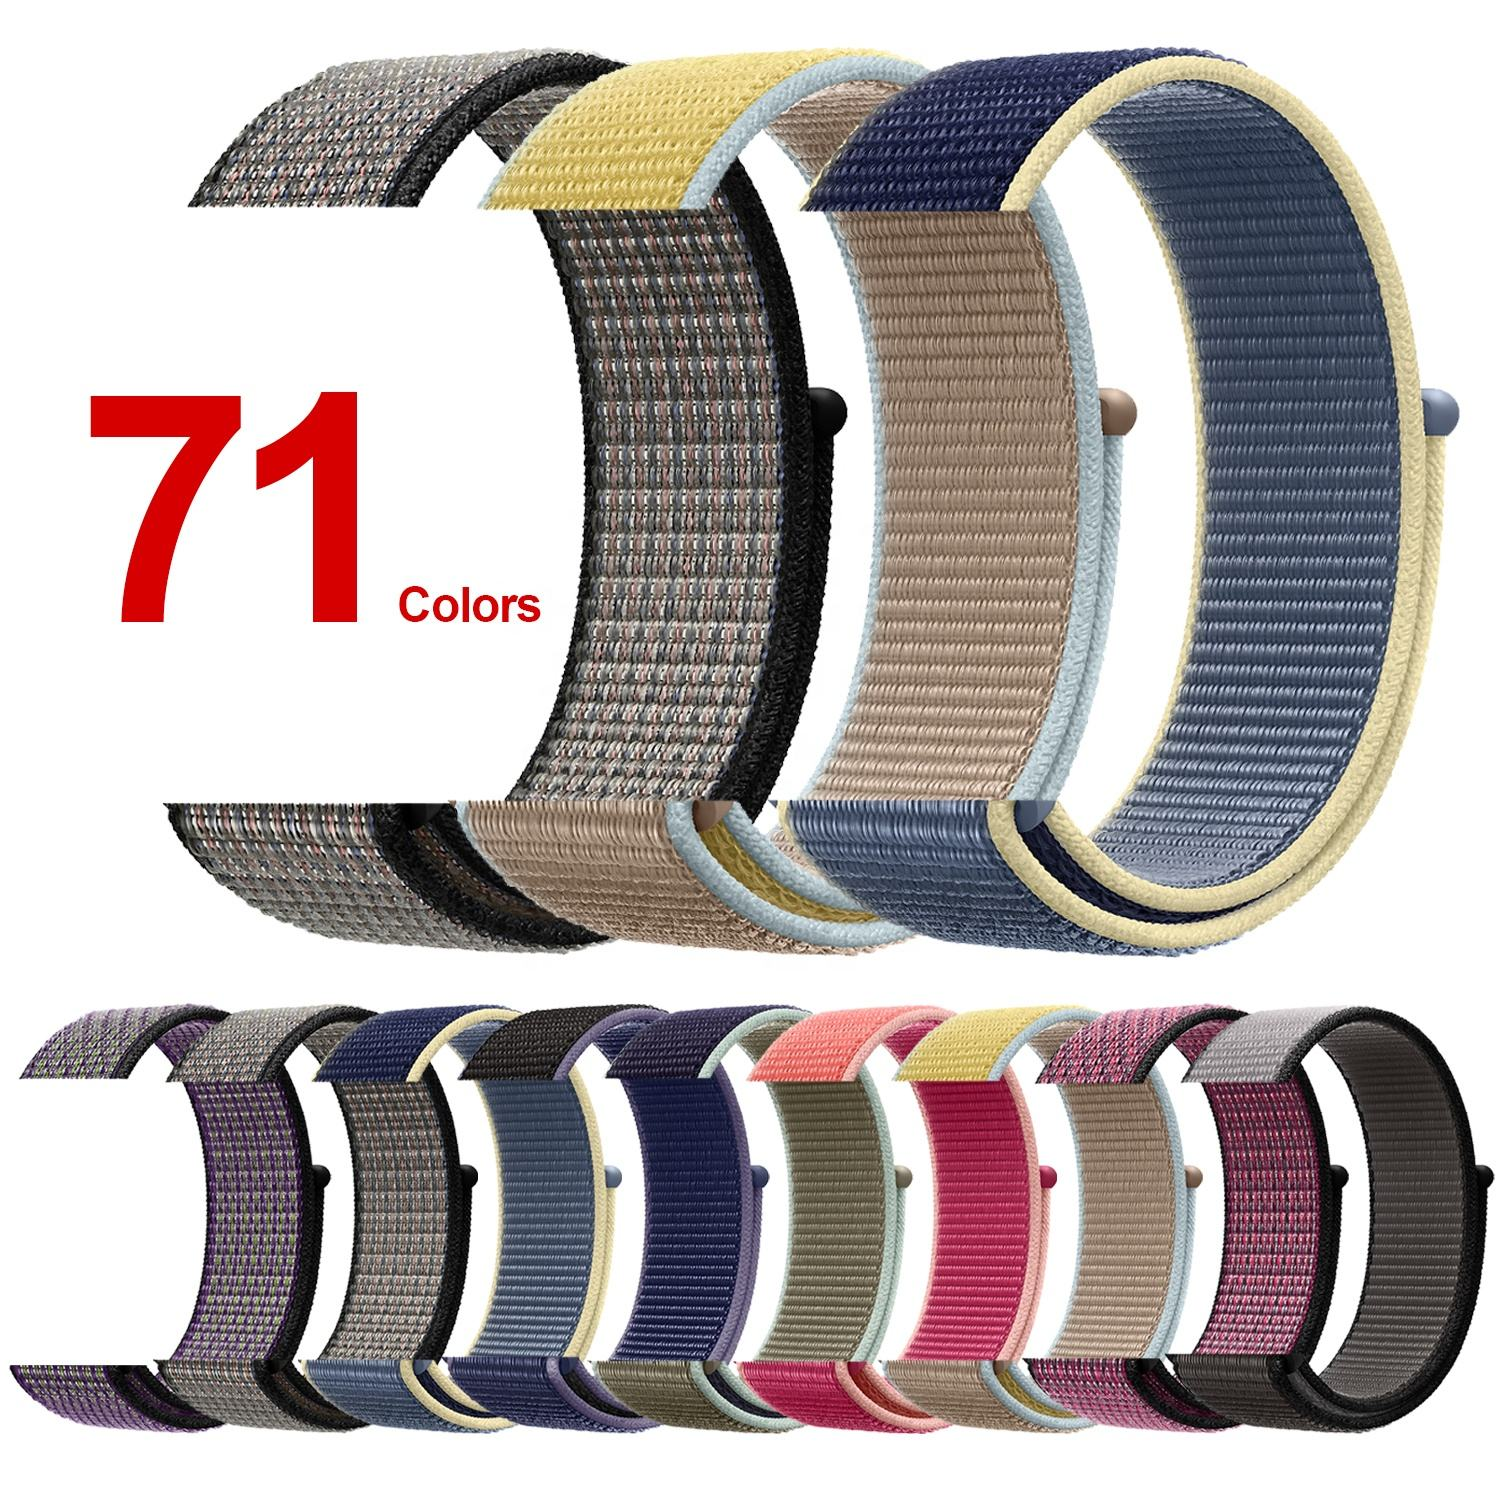 Tschick Nylon Wristbands For Apple Watch Band 38/40mm 42/44mm,Woven Nylon Sport Loop Replacement Strap For iWatch Series 5 4 3 2